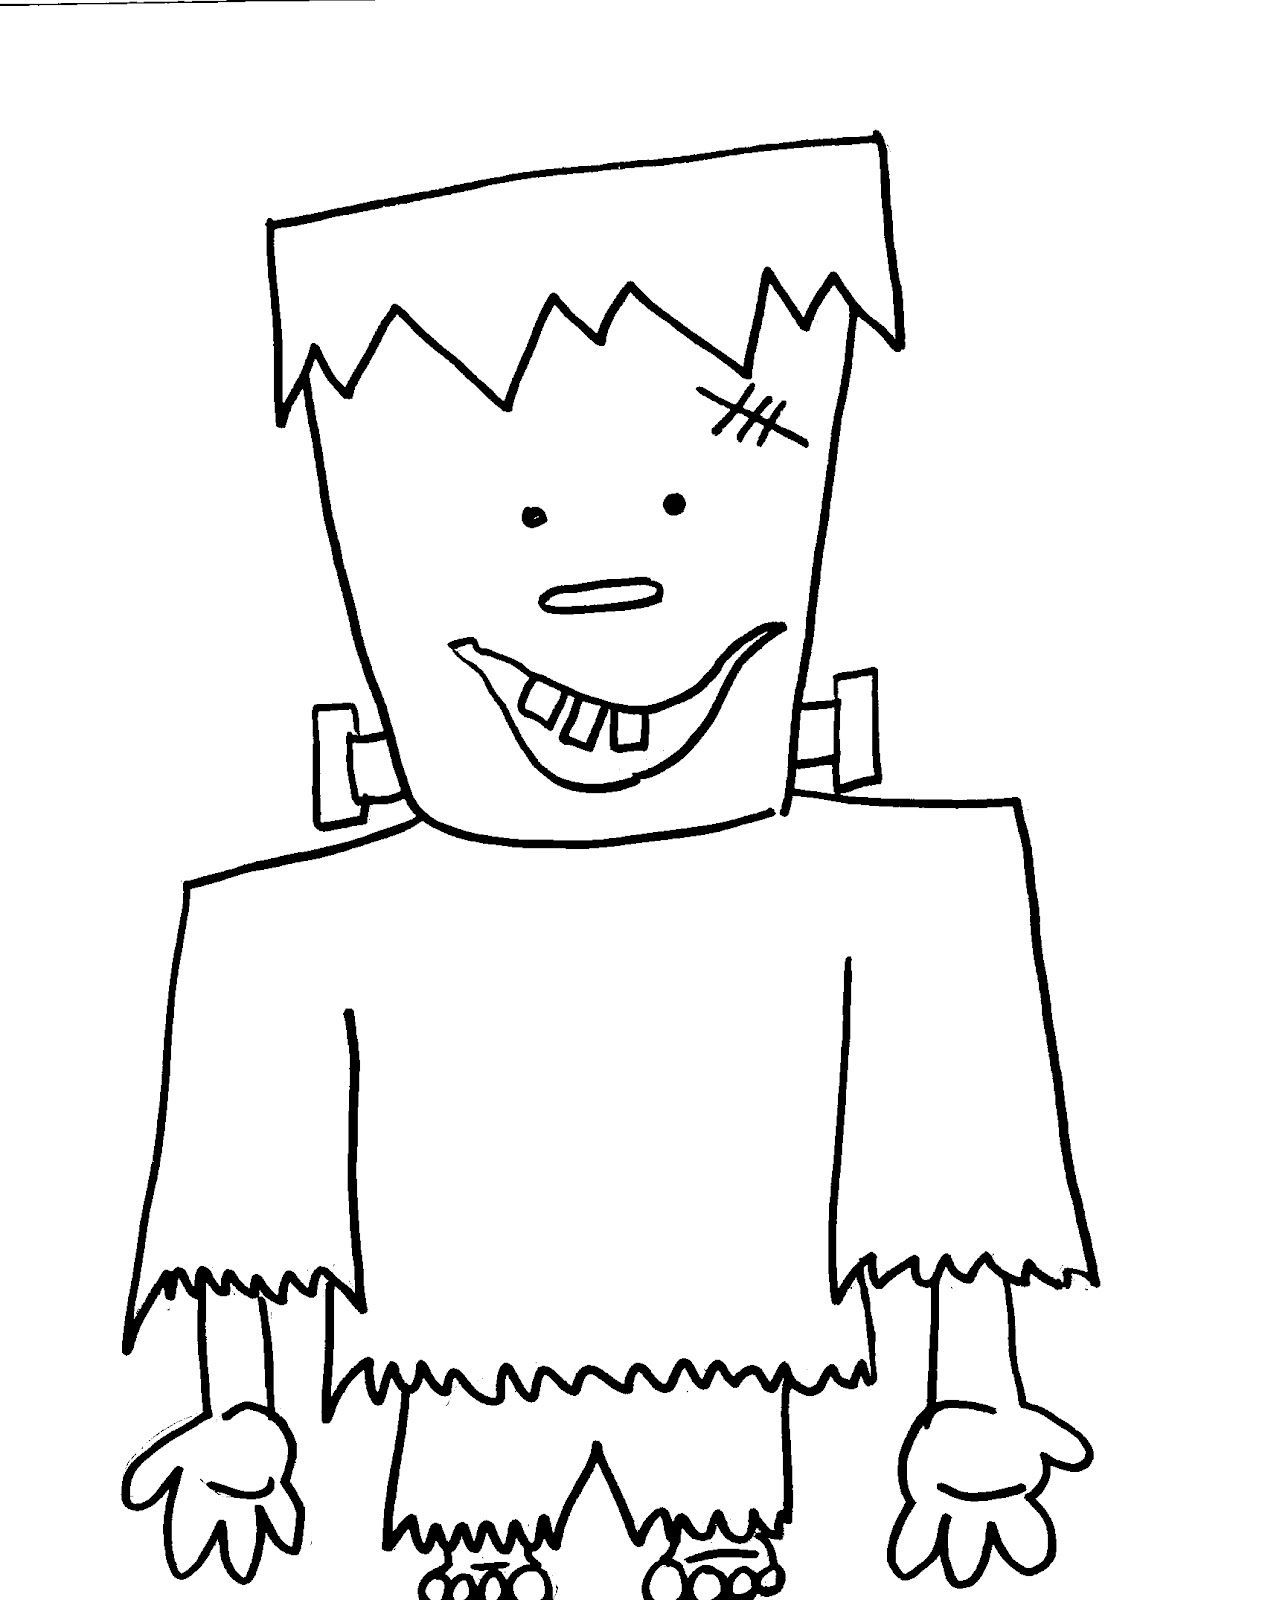 frankenstein coloring page for halloween halloween fun